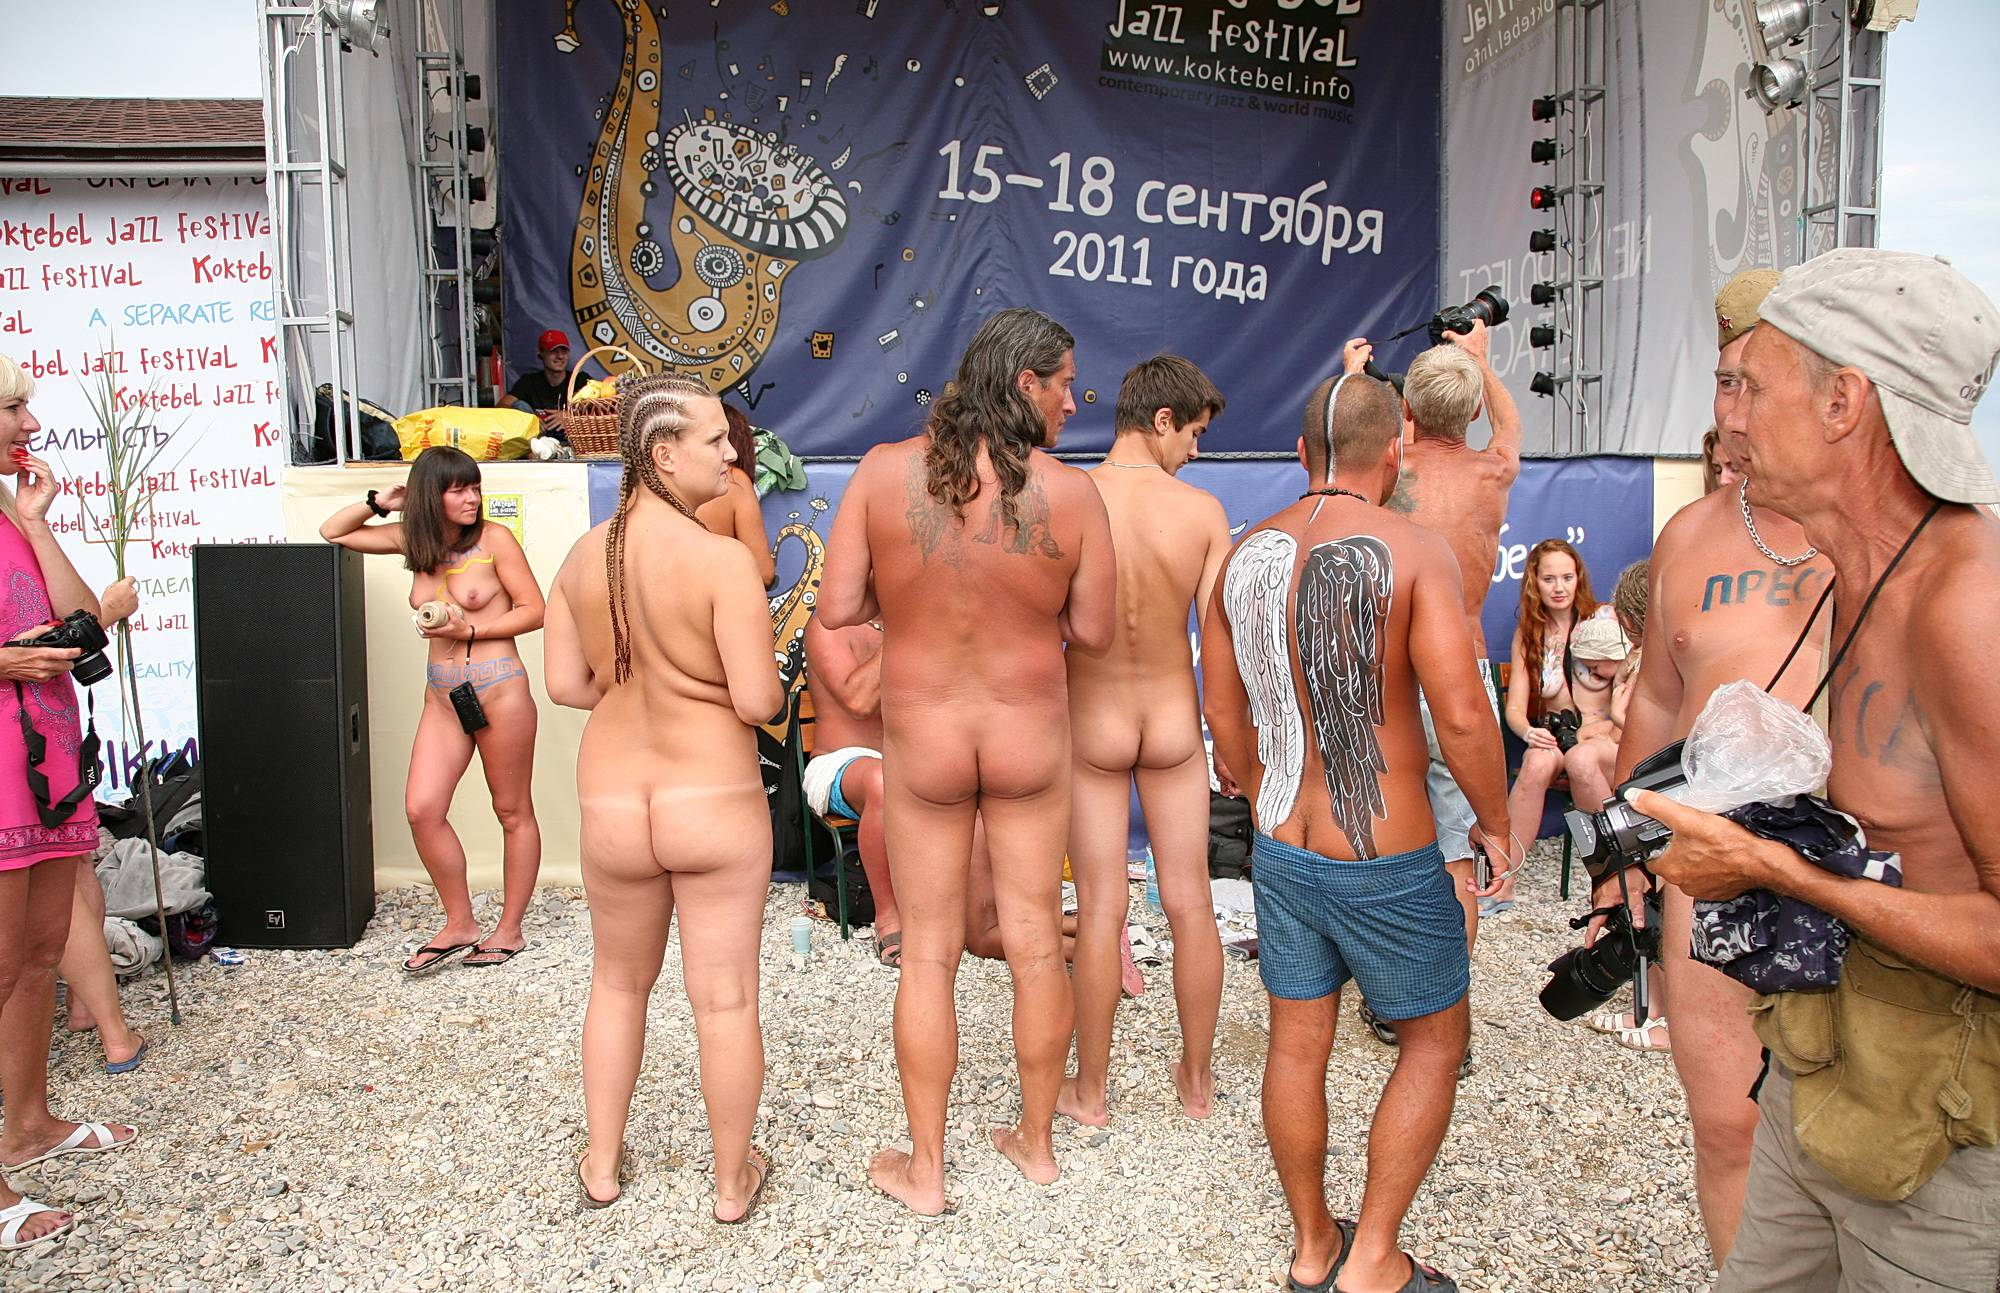 Body Paint Enthusiasts - 2